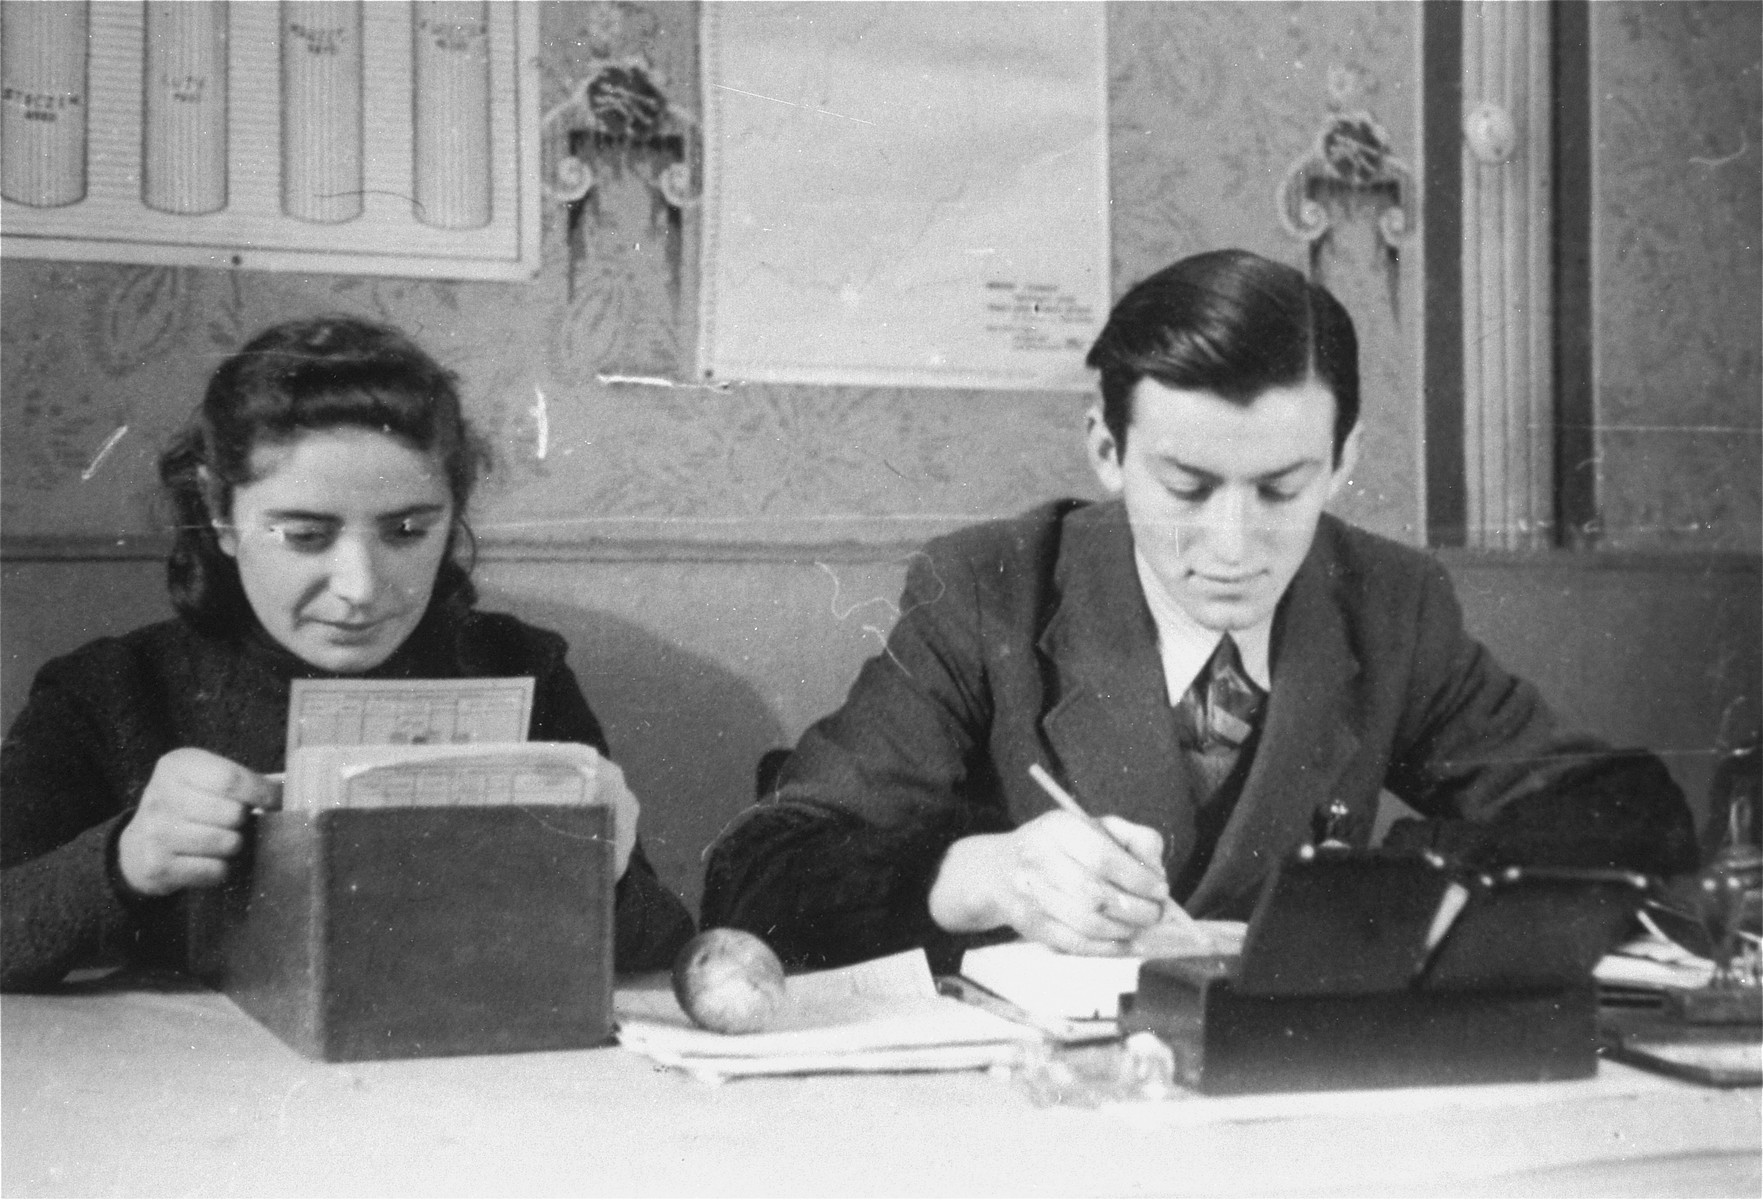 Two members of the ghetto administration at work in the office of the Judenrat in the Kielce ghetto.  This photo was one the images included in an official album prepared by the Judenrat of the Kielce ghetto in 1942.